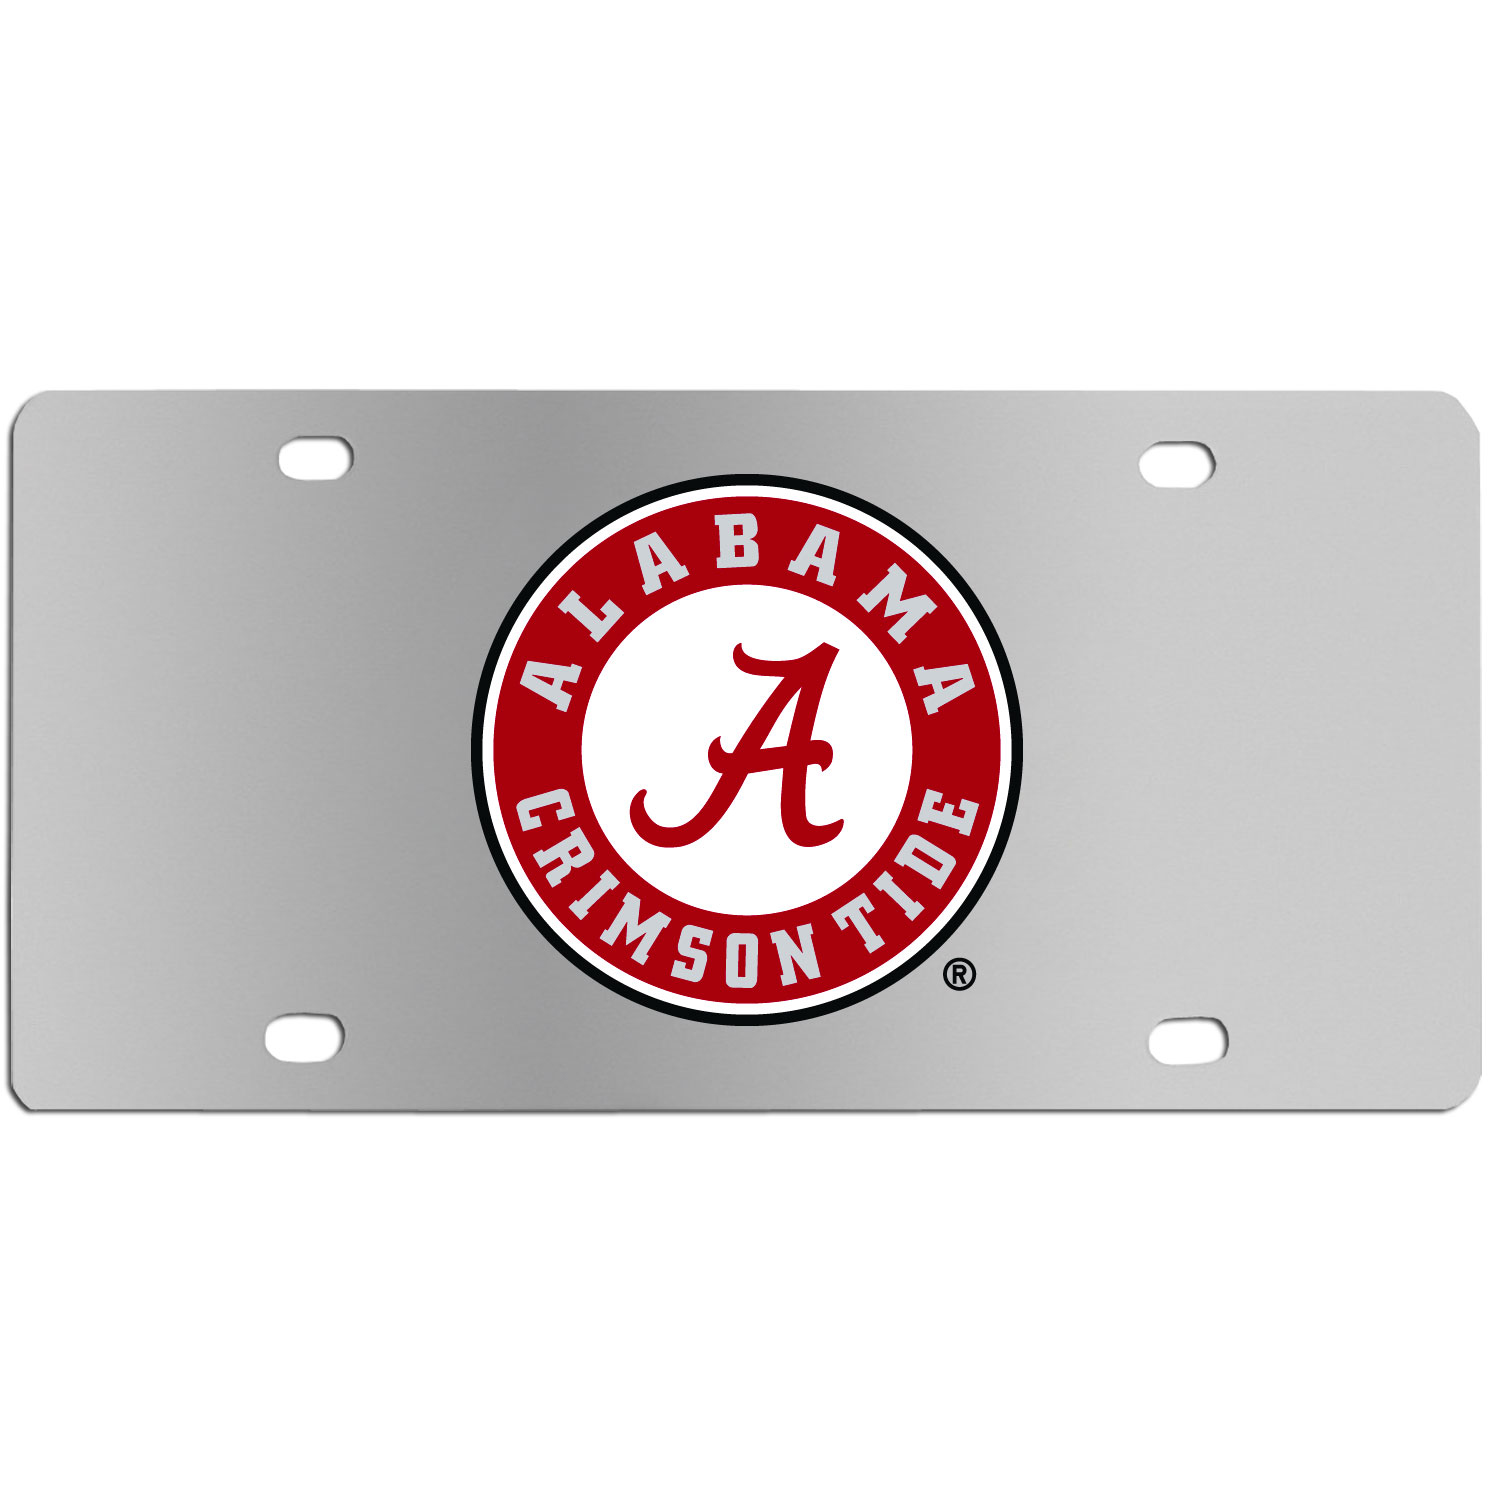 Alabama Crimson Tide Steel License Plate Wall Plaque - This high-quality stainless steel license plate features a detailed team logo on a the polished surface. The attractive plate is perfect for wall mounting in your home or office to become the perfect die-hard Alabama Crimson Tide fan decor.